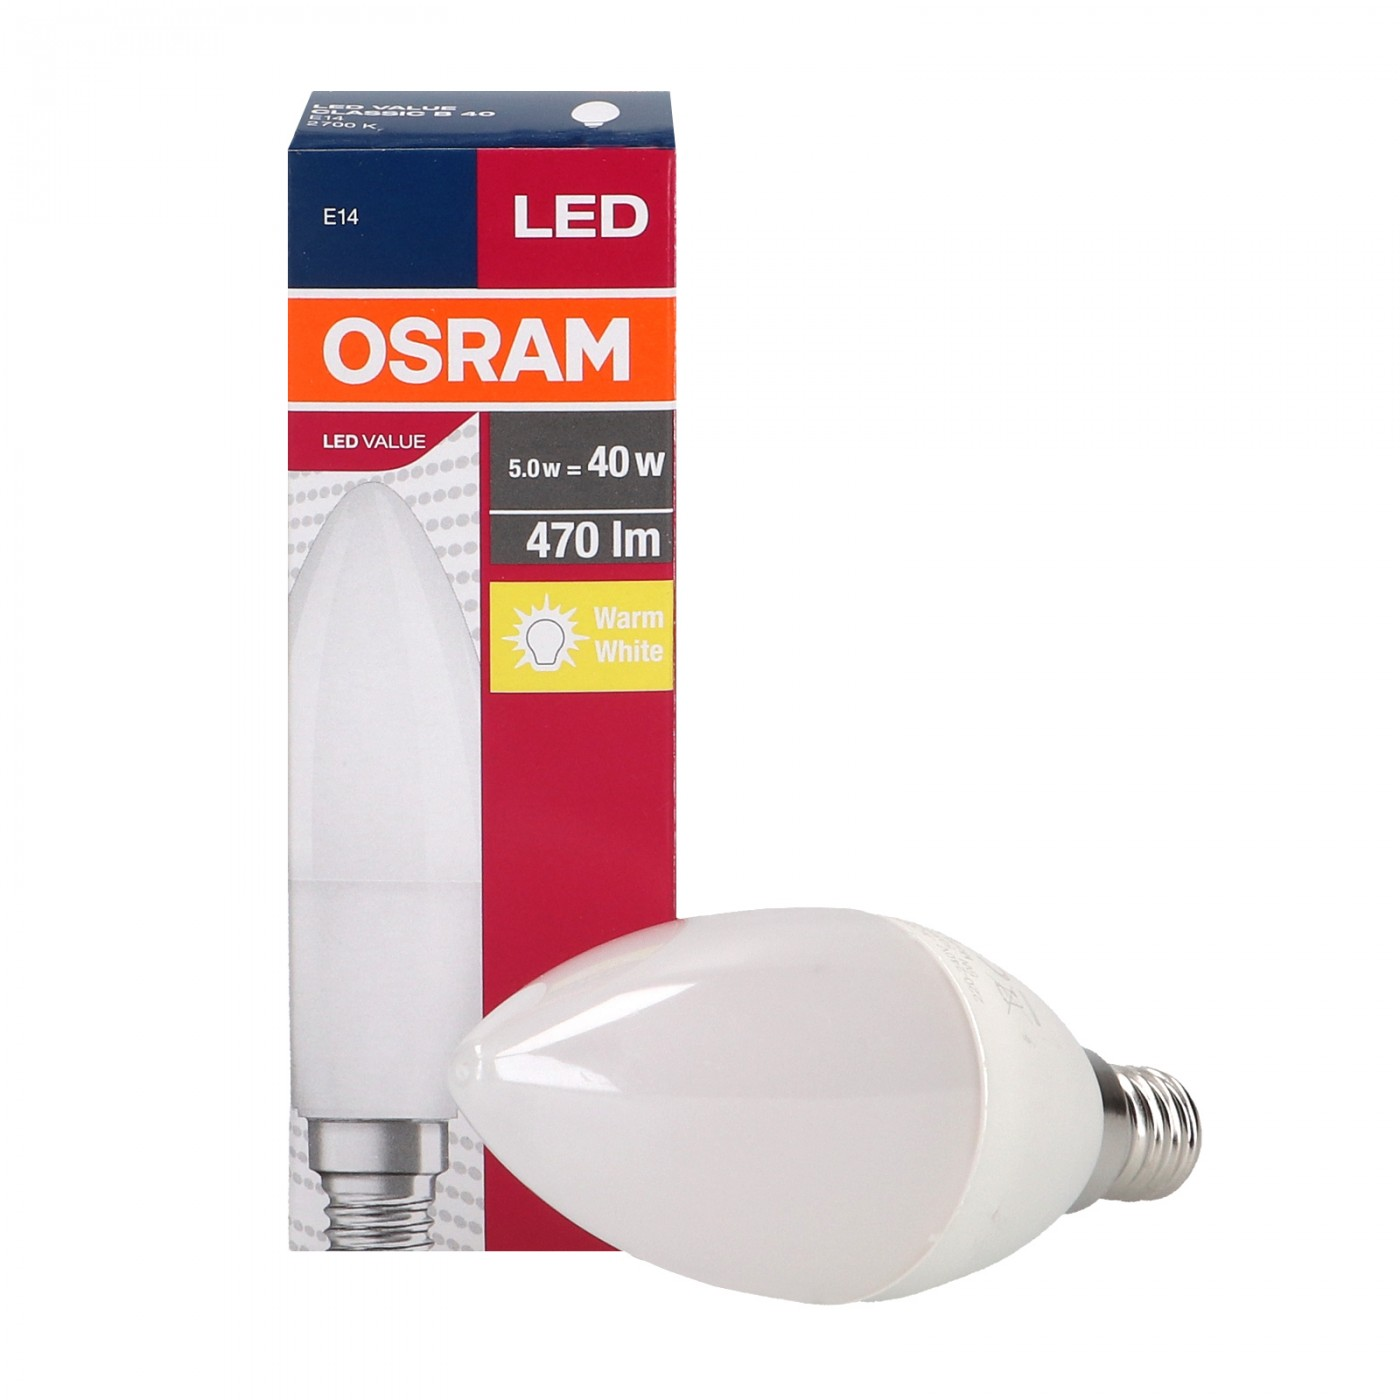 Value Classic 5W E14 B40 FR OSRAM Lighting